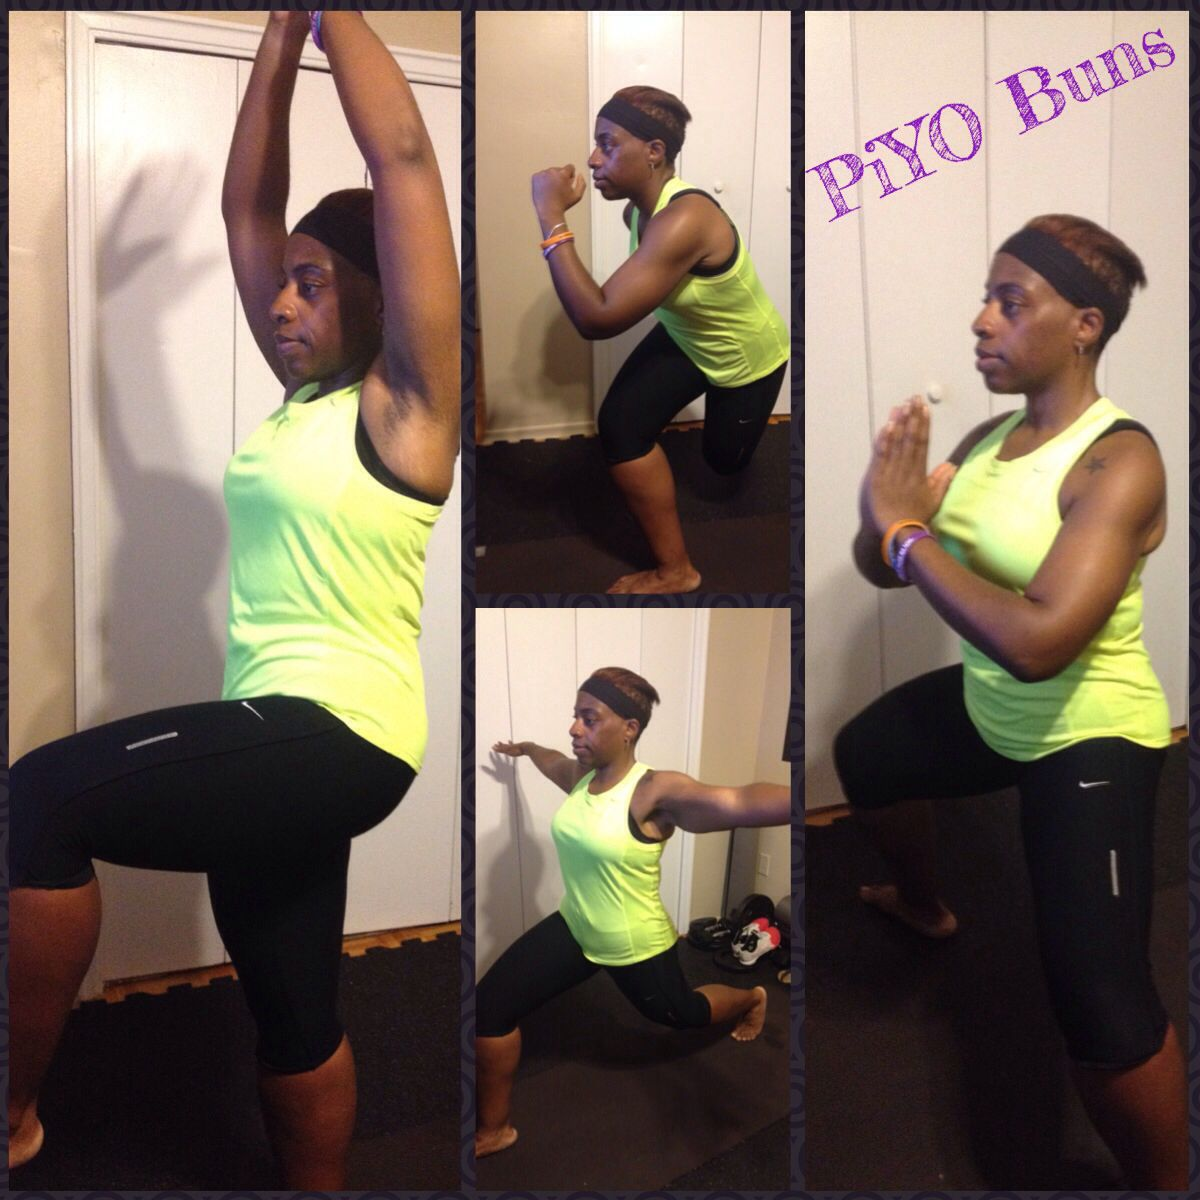 It was a great way to rise and shine!  #piyo #running #inspire #ww #weightlosejourney #getfit #wwpp #fitchicks #piyopse #runnergirl #fitlifestyle #fit #run #fitness #runnerspace #motivate #weightwatchers #fitfam #strength #flexibility #pilates #stretching #yoga #runnerscommunity #